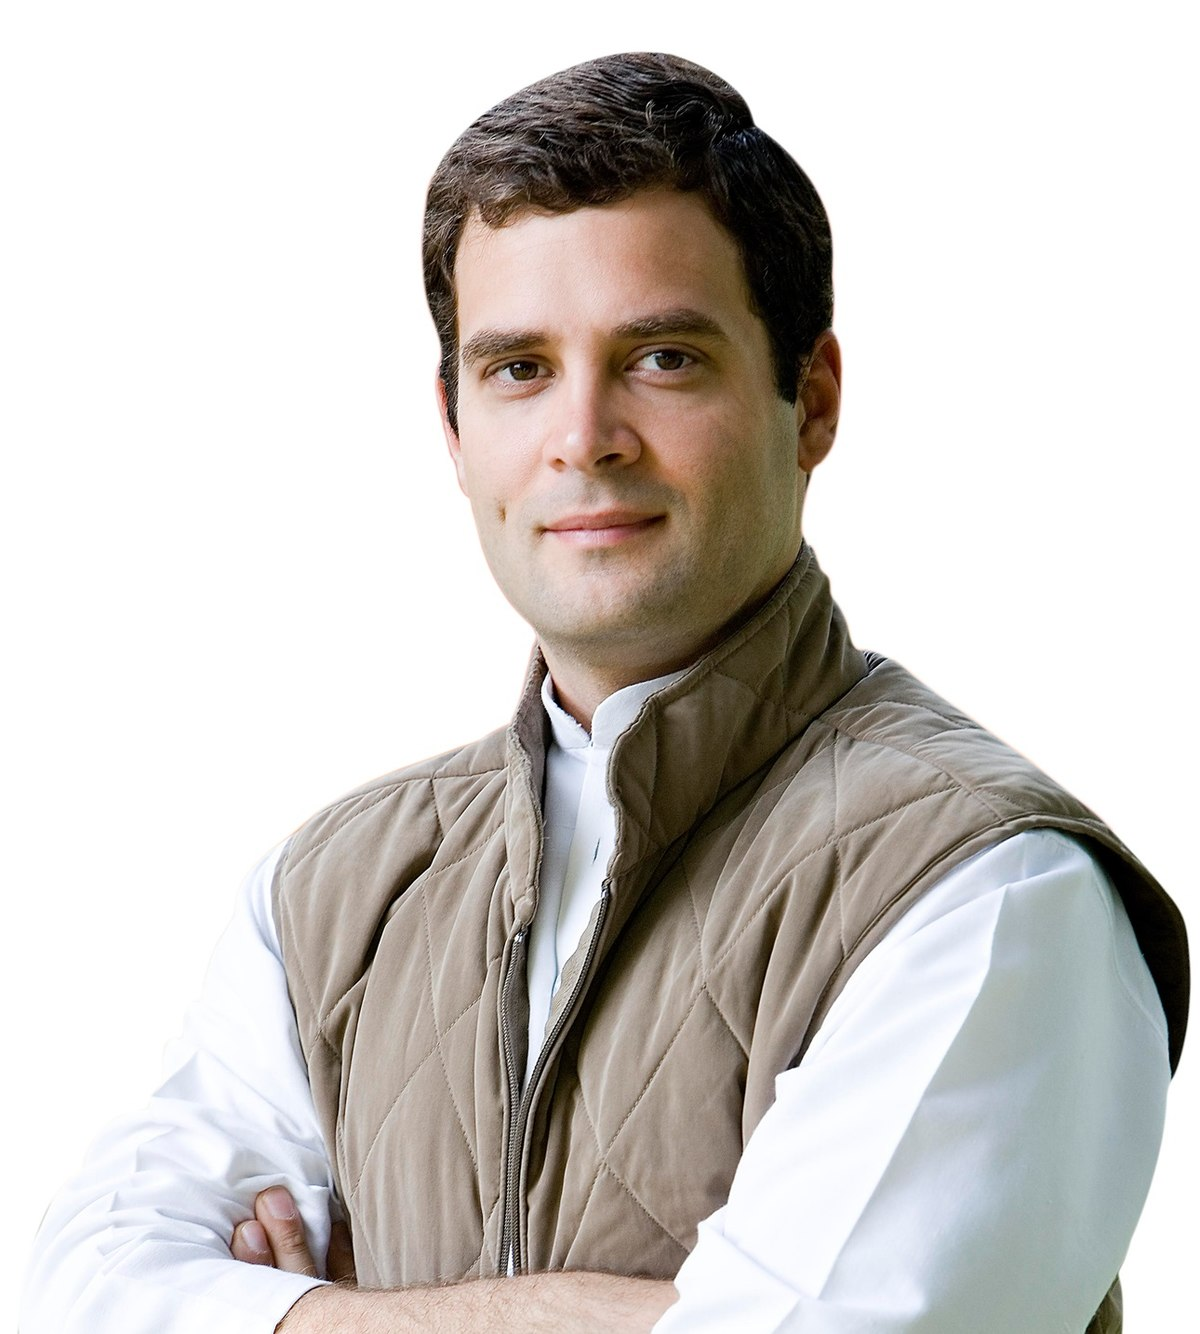 PM should fast track cases of rapes of minor children: Rahul